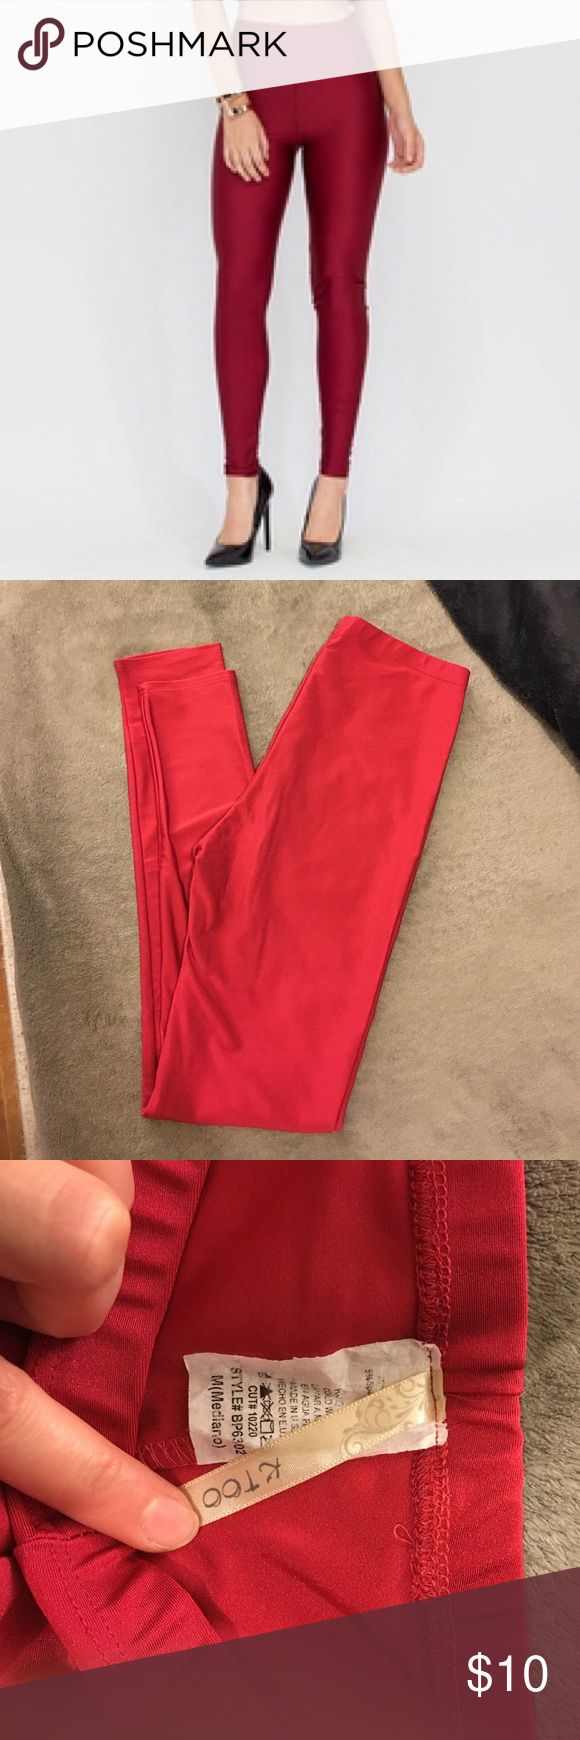 HIGH WAISTED SHINY RED LEGGINGS SZ. M ❤️❤️ NEW without tags, perfect condition!  High waisted hot red shiny leggings, Sz. M Pants Leggings